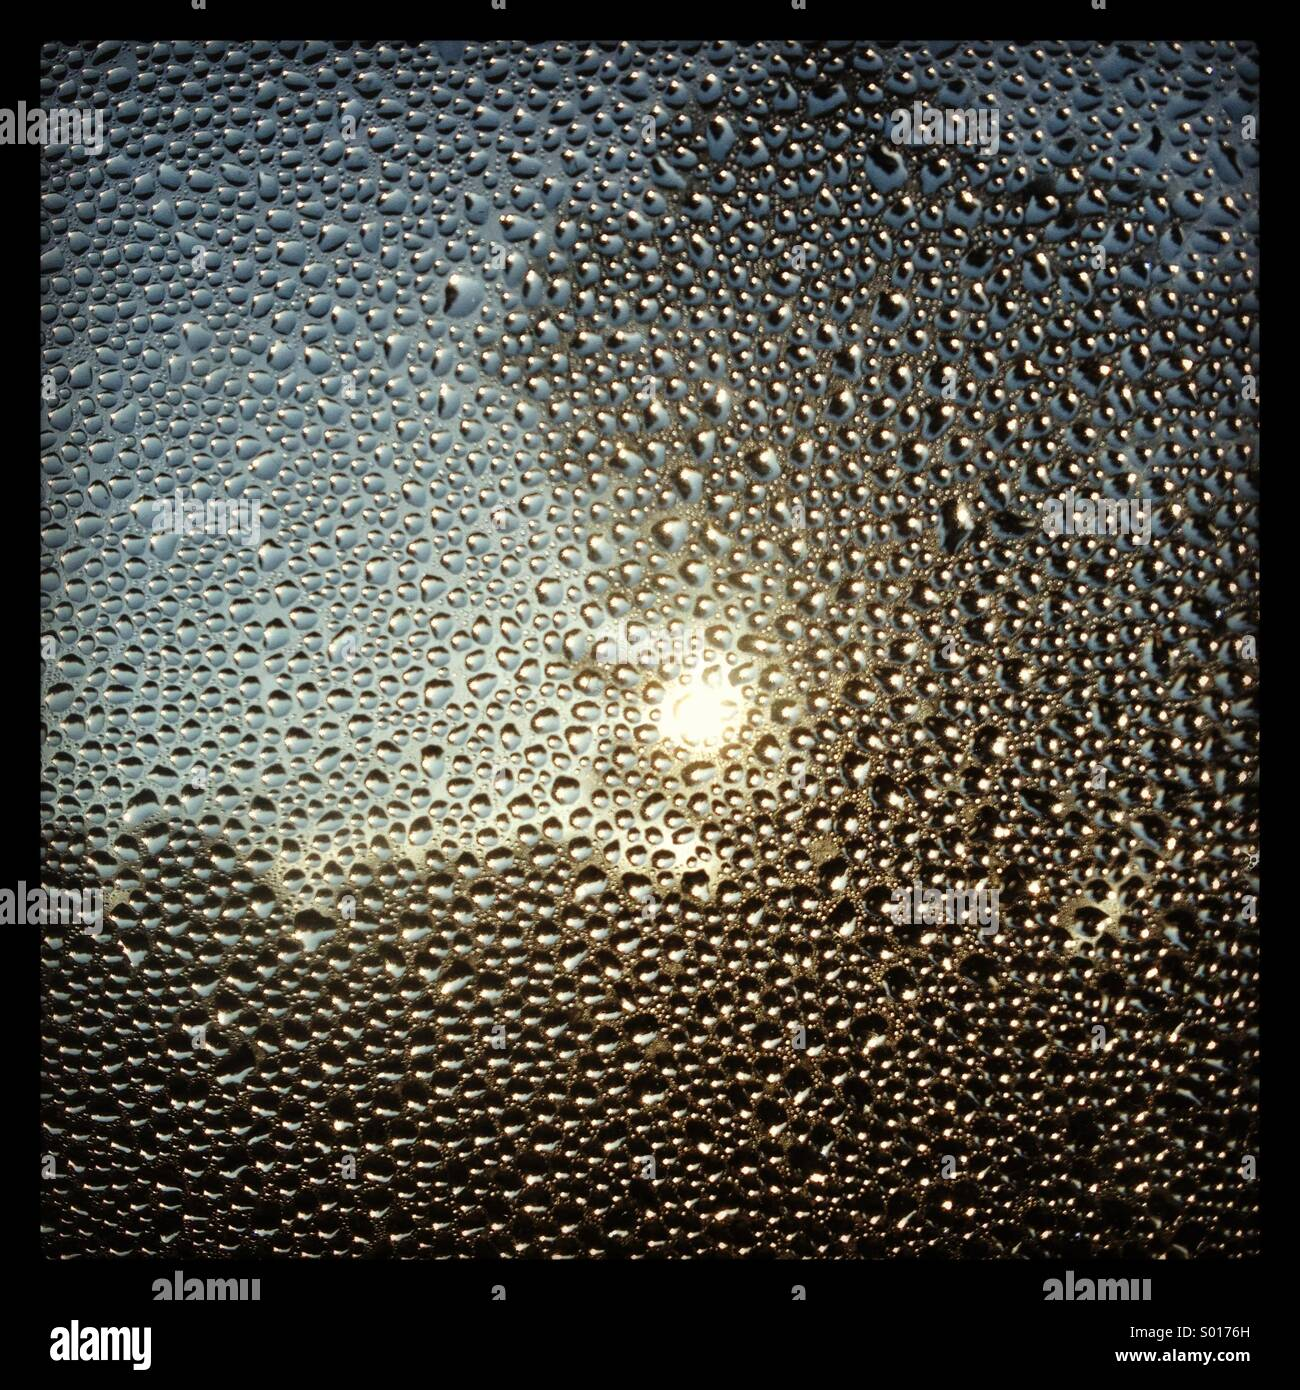 Condensation on a window at sunrise - Stock Image